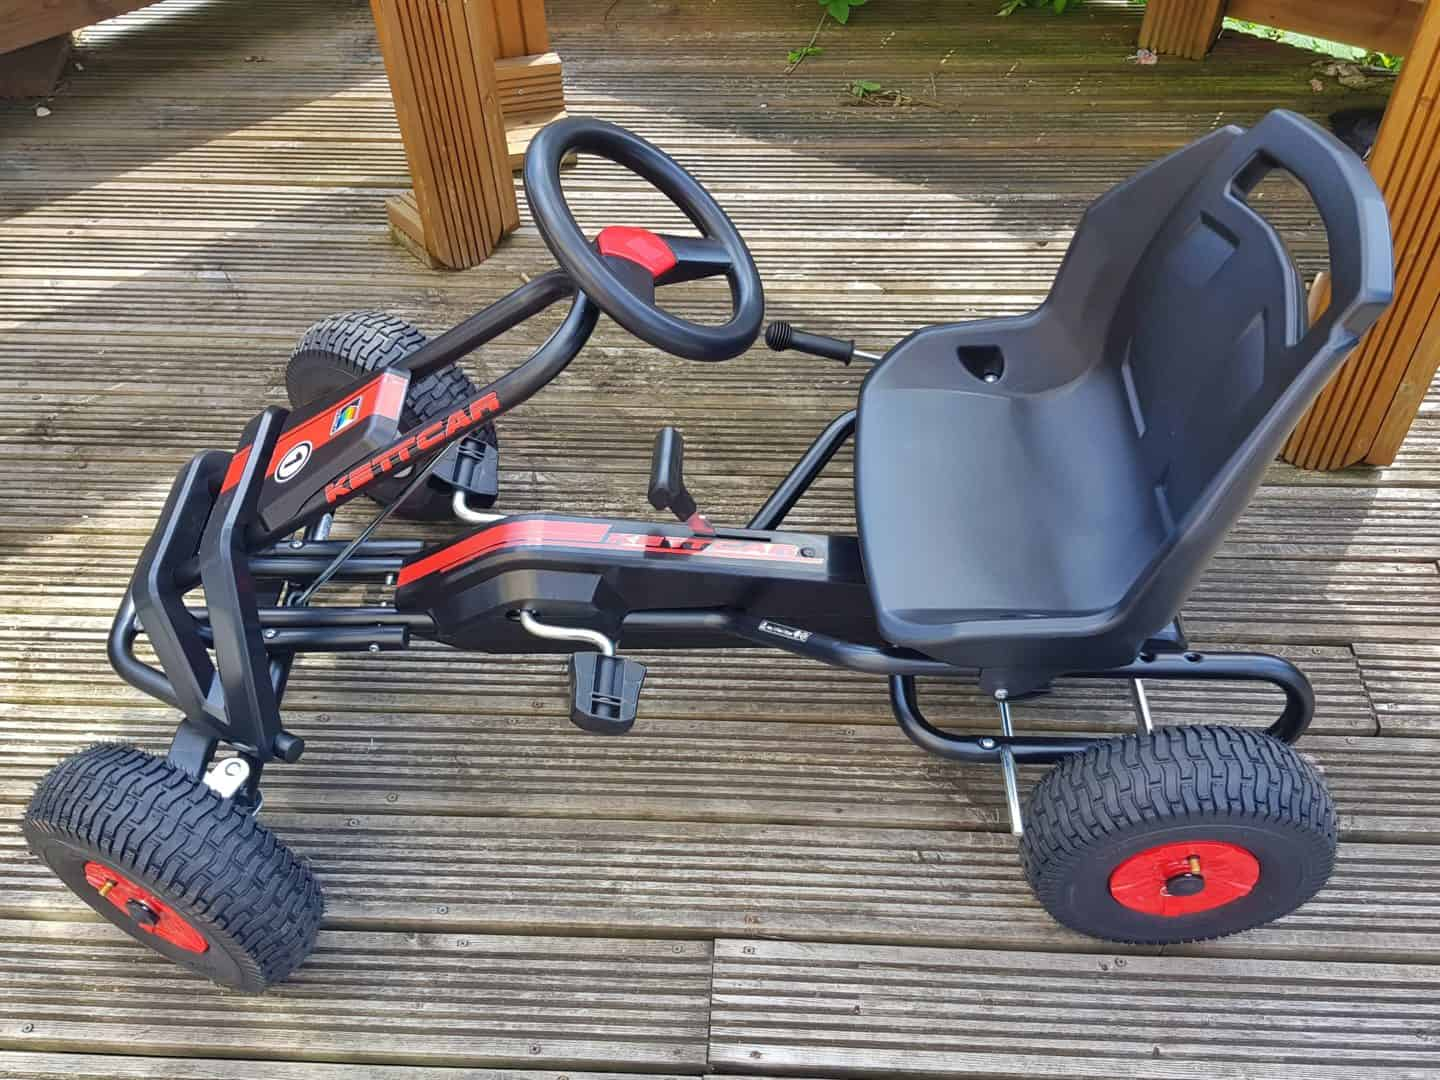 Kettler Barcelona Air Go Kart side view with no rider